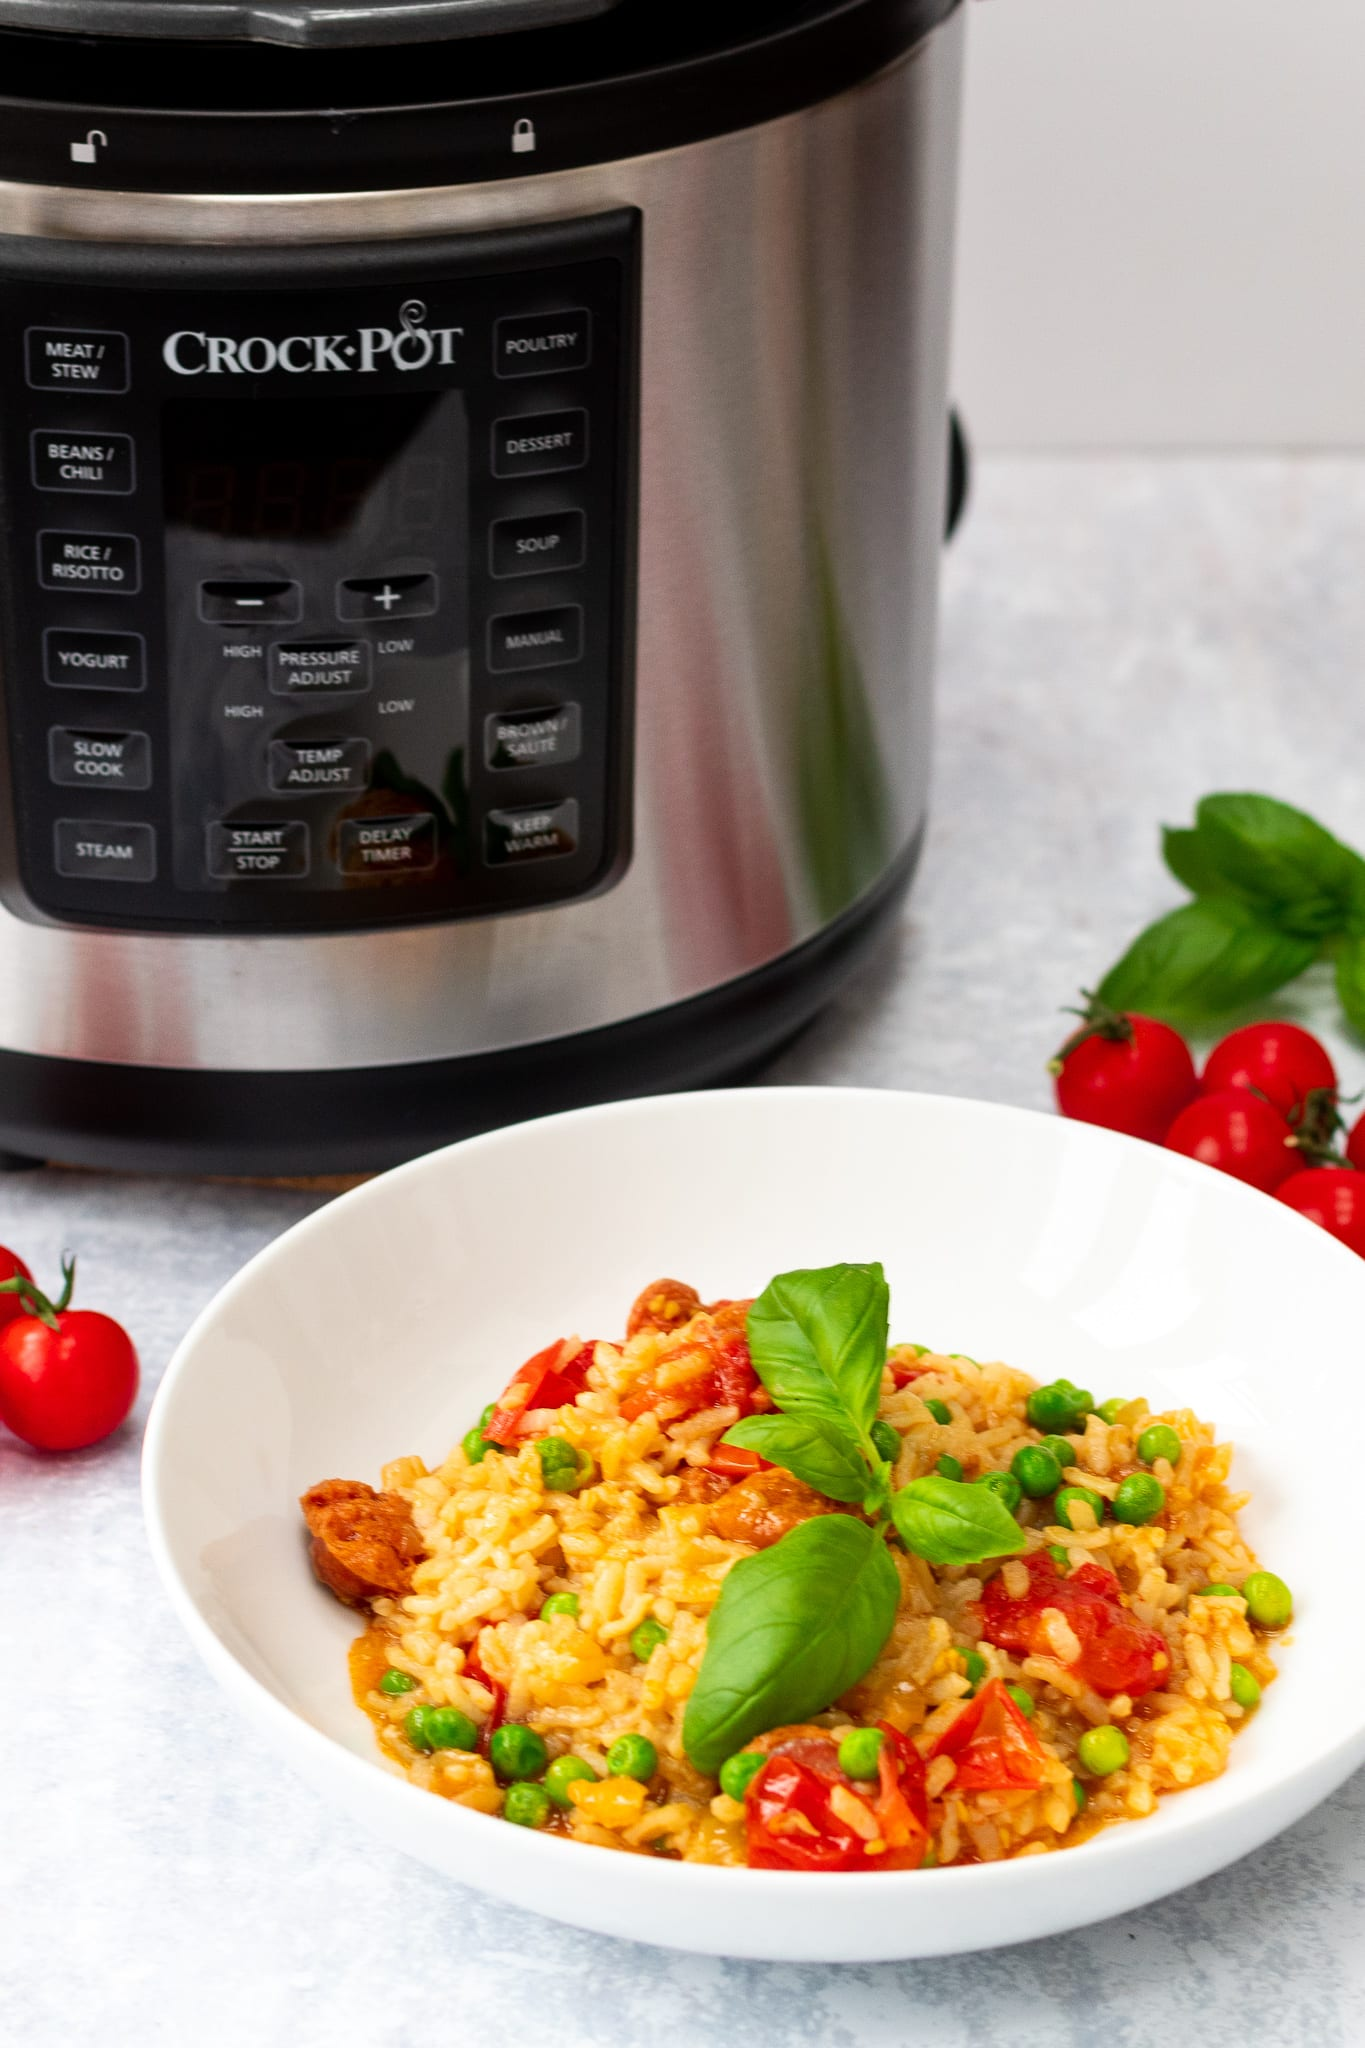 Pressure Cooker Chorizo Risotto And Crock Pot 174 Express Multi Cooker Review Searching For Spice